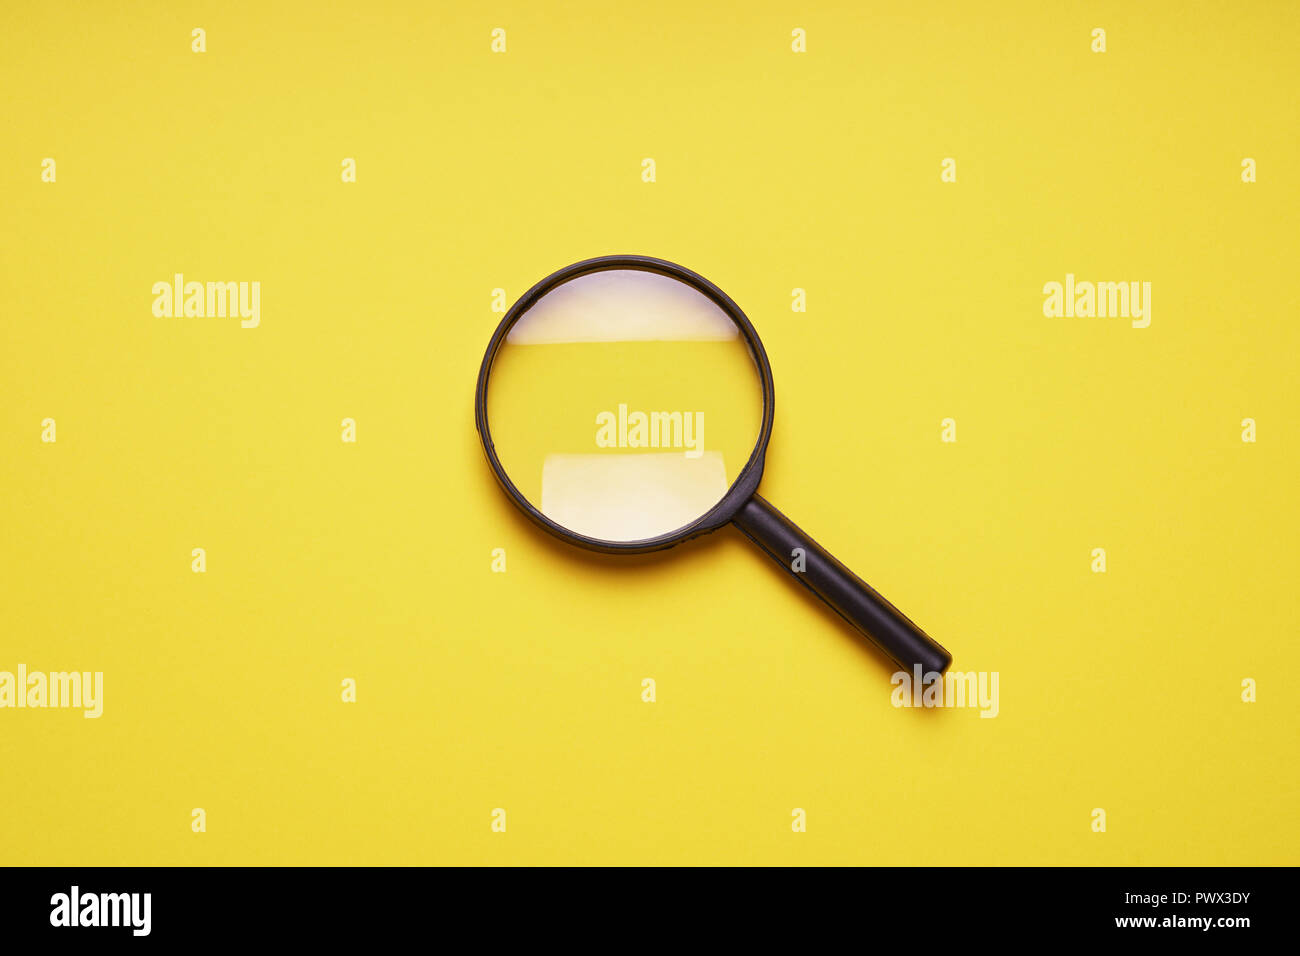 magnifying glass magnifier loupe search symbol on yellow background with copy space Stock Photo